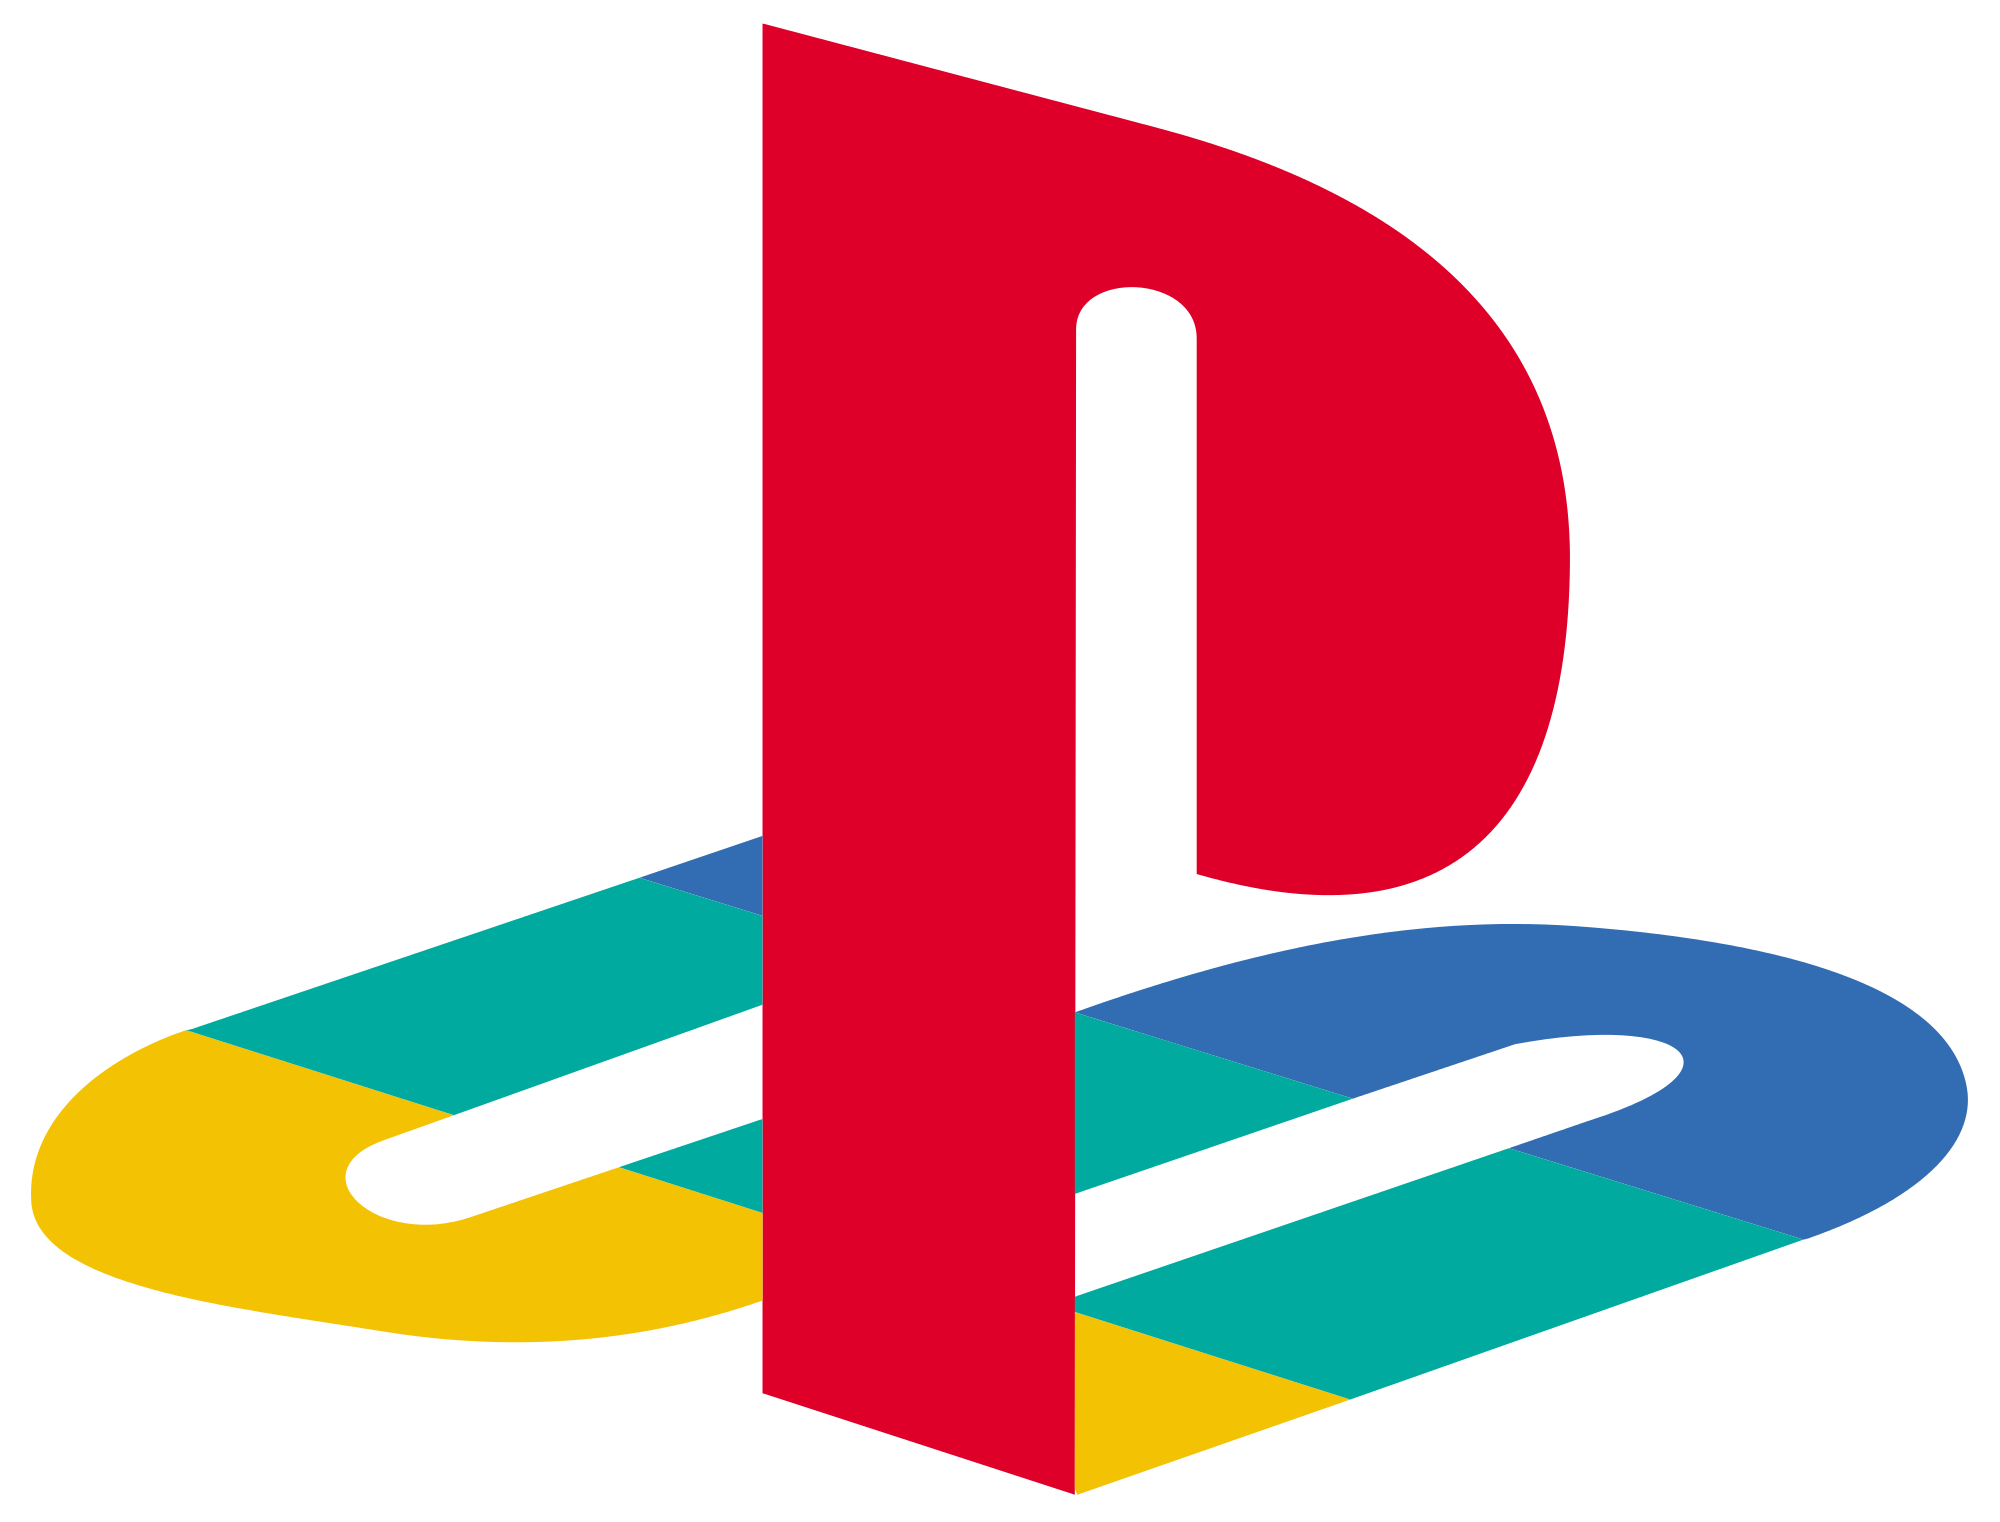 N64 logo png. Can we place the